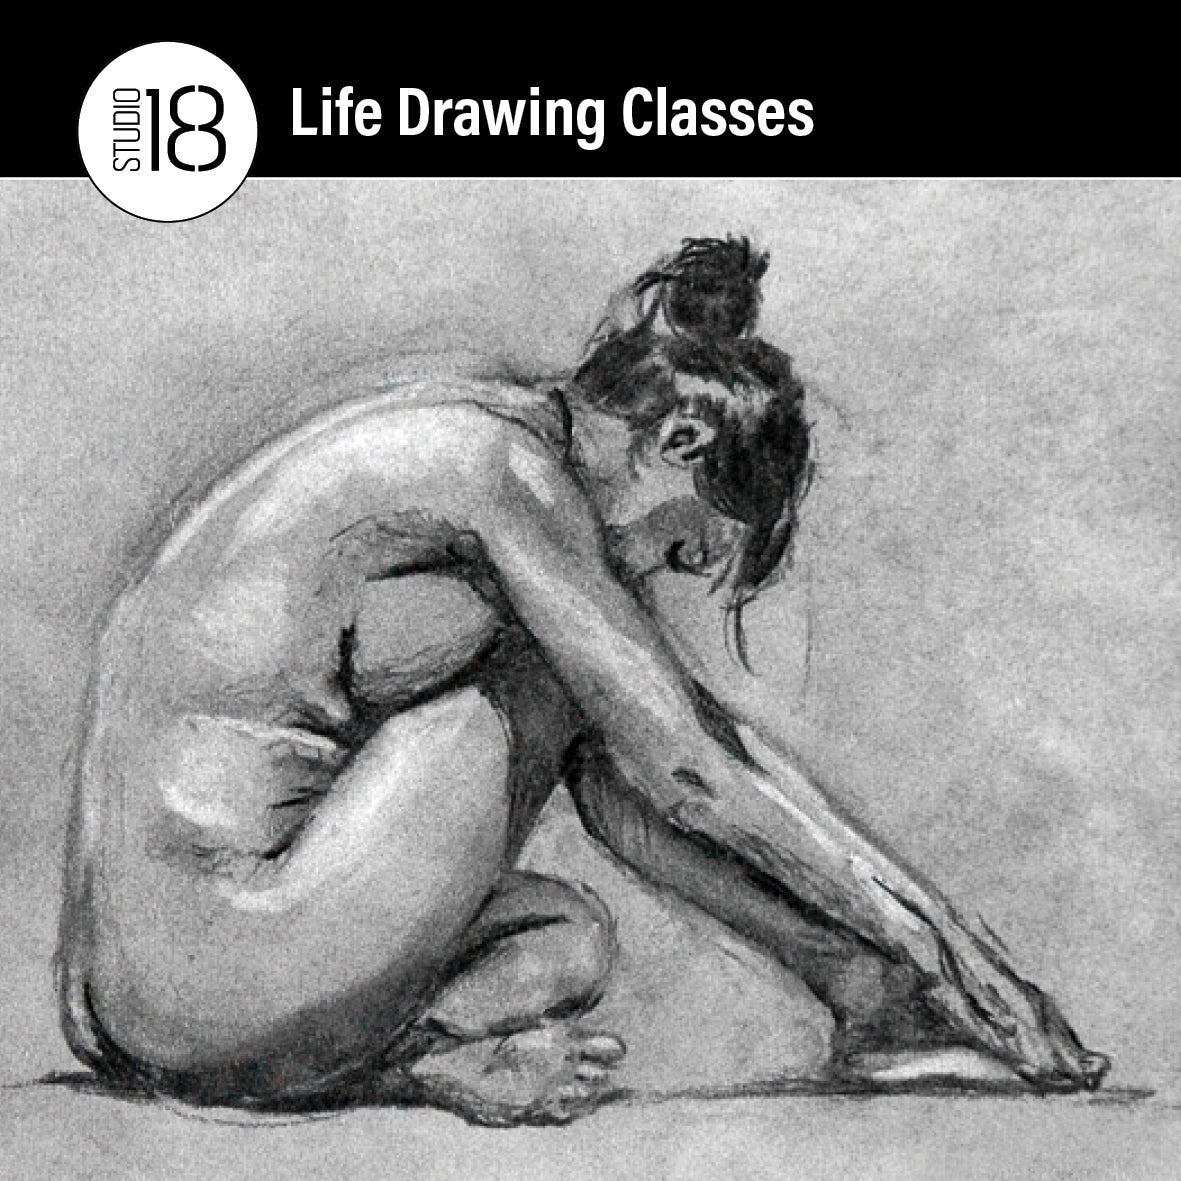 Life Drawing Classes. On the First Thursday of the Month from 6:30 to 9:00pm